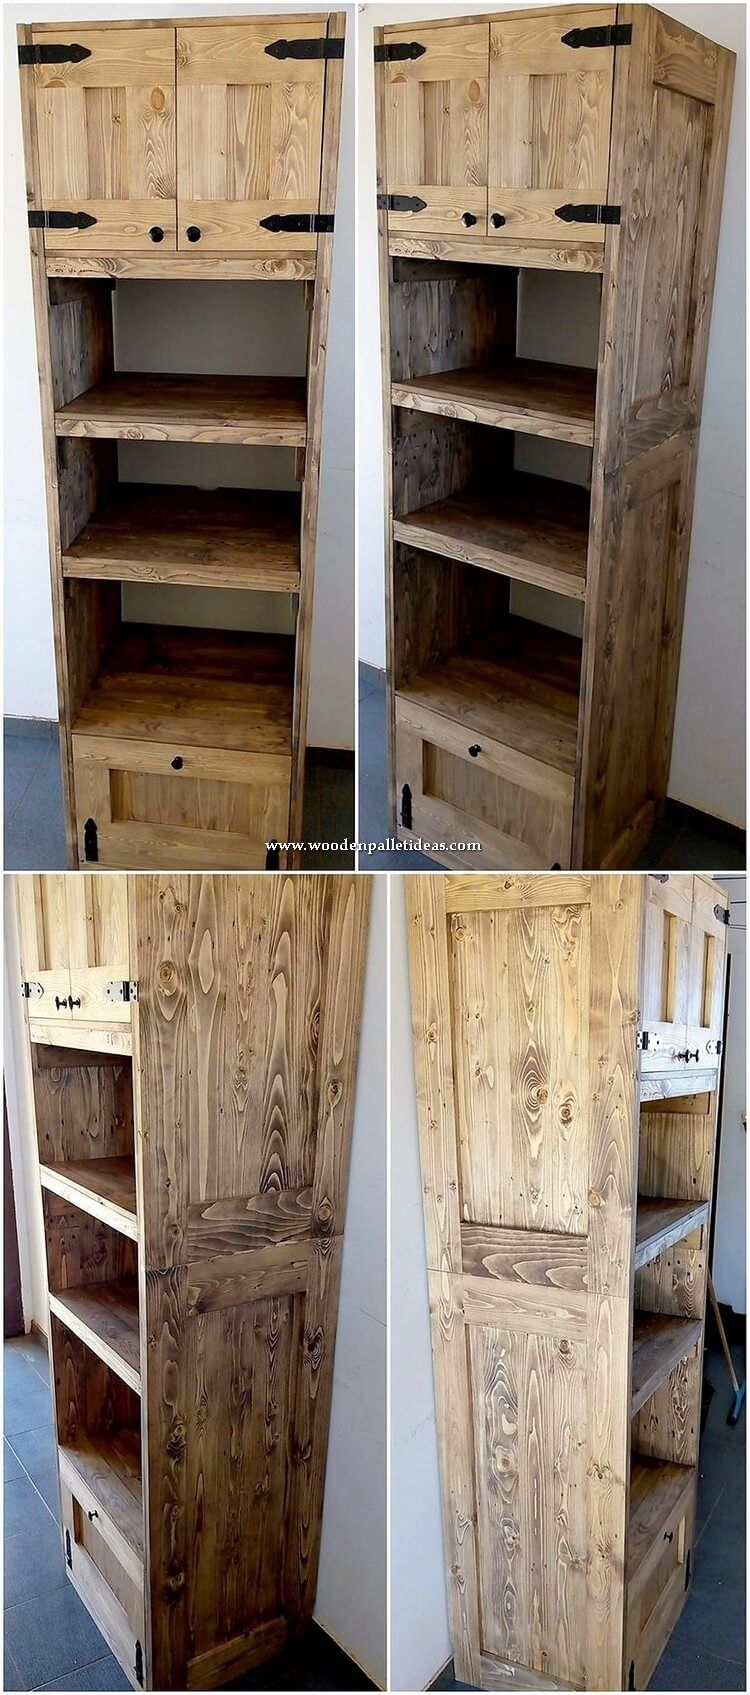 Creative Diy Projects Of Old Wood Pallets Recycling Wood Pallet Recycling Wood Pallets